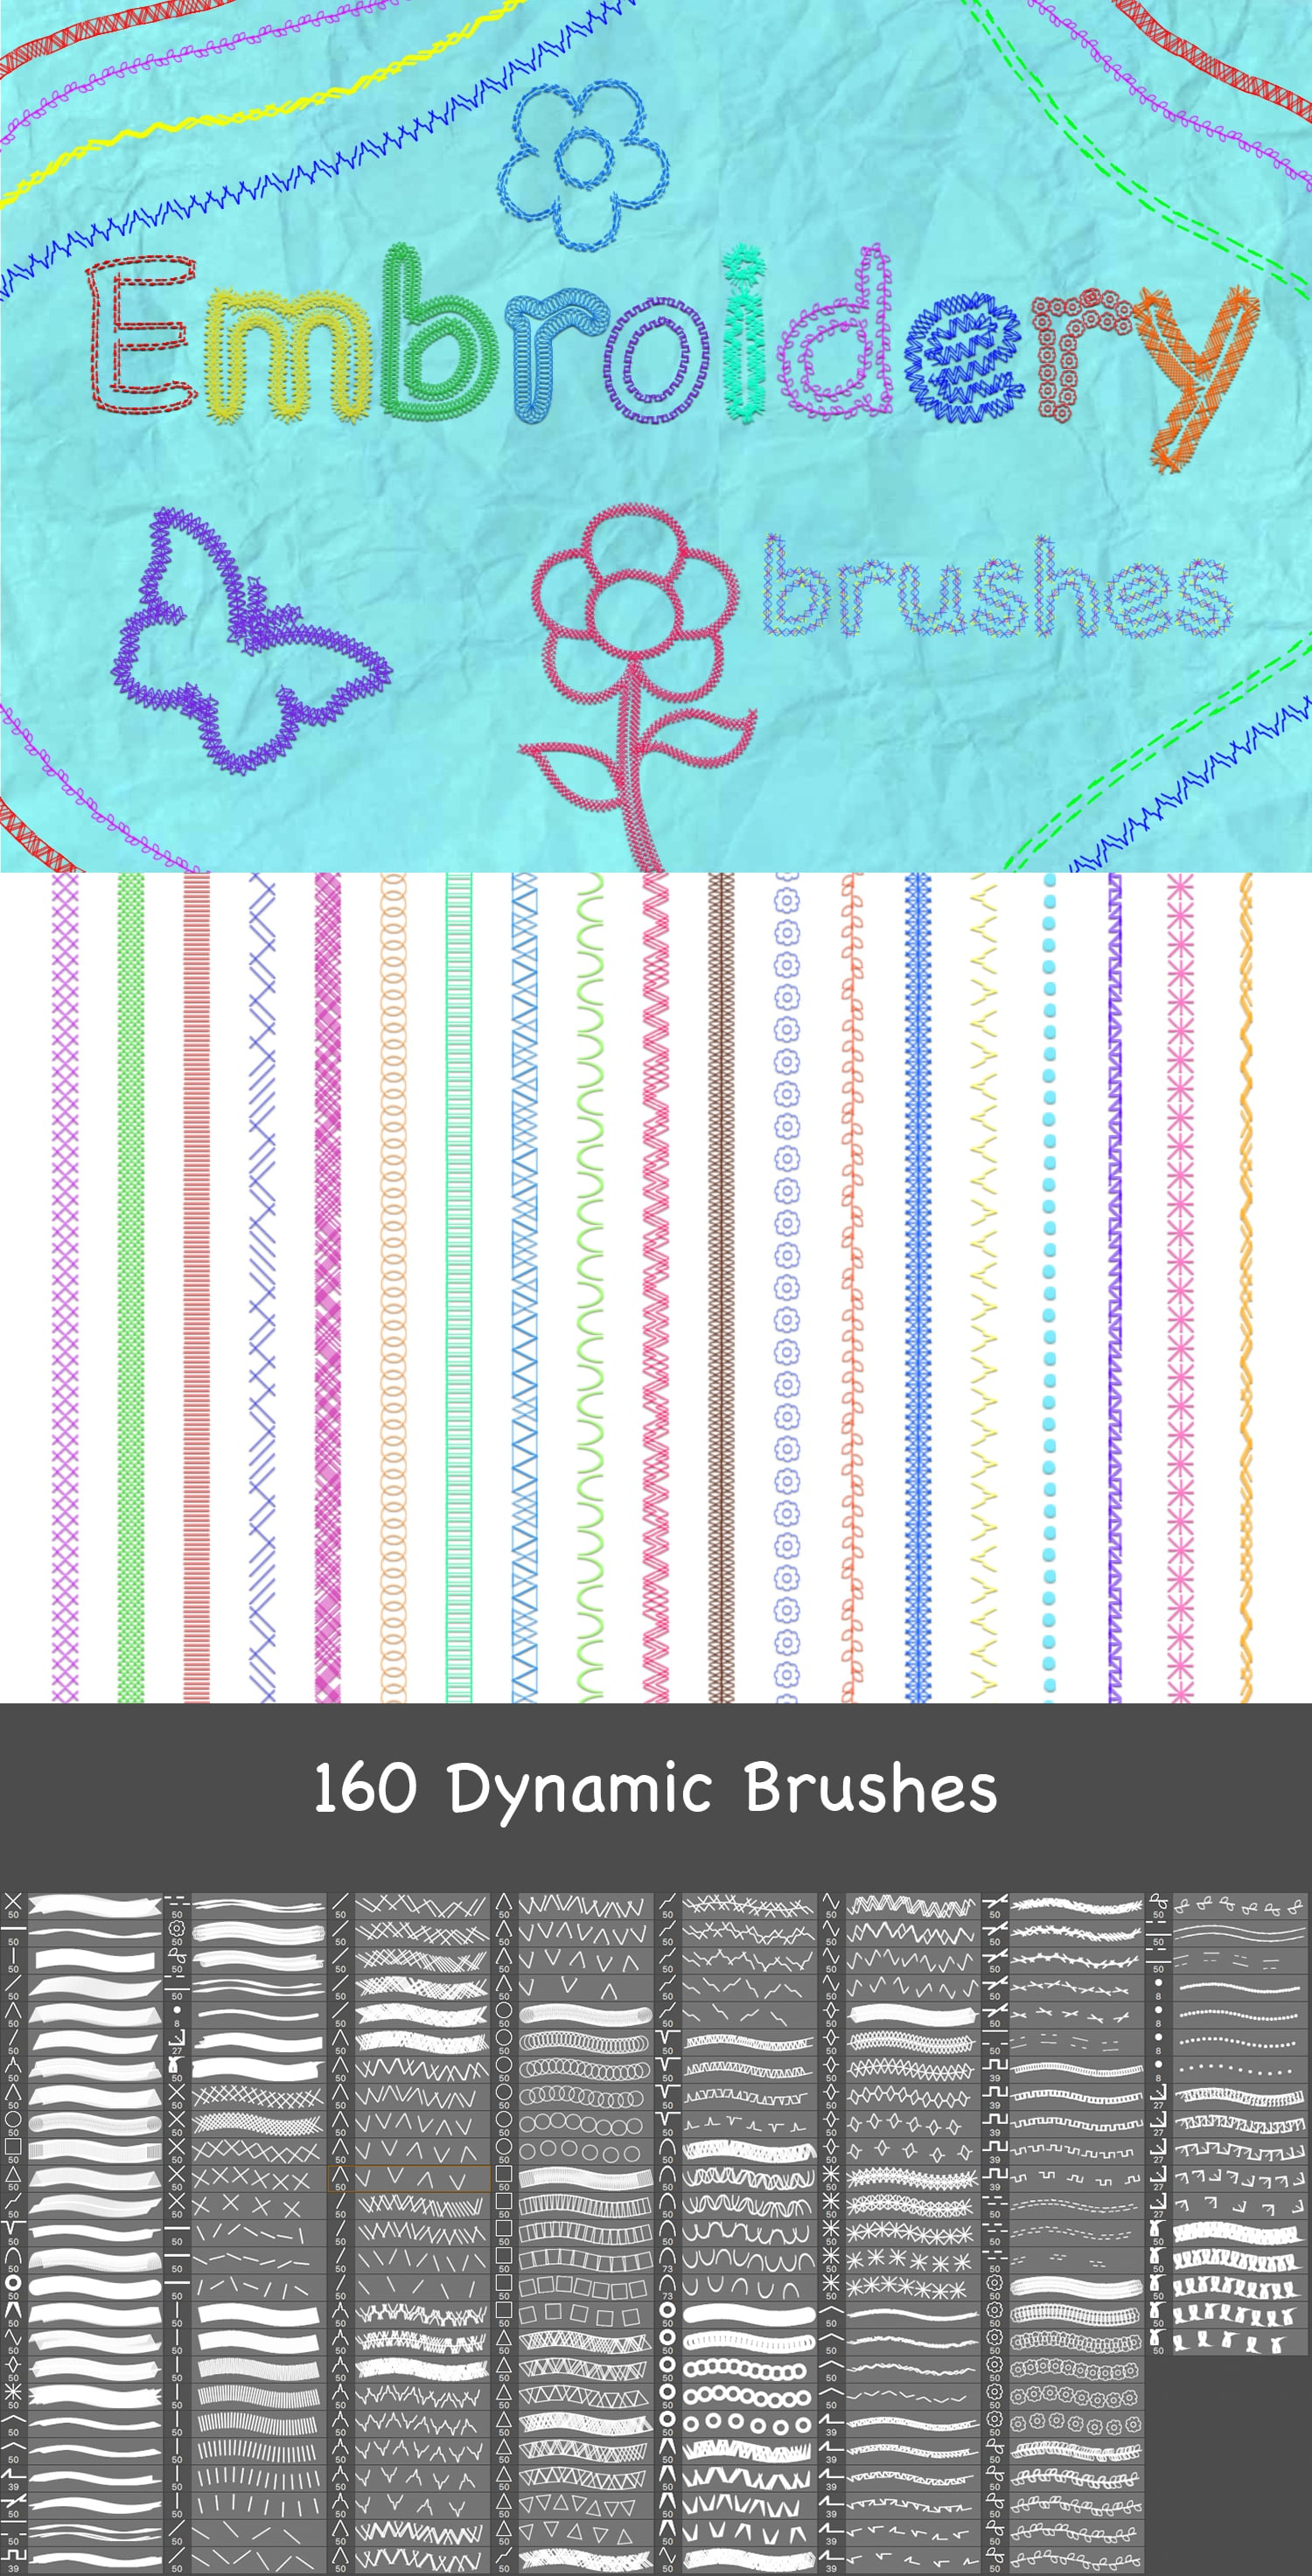 2500+ Artistic Brushes + Extra Assets - 09 Embroidery